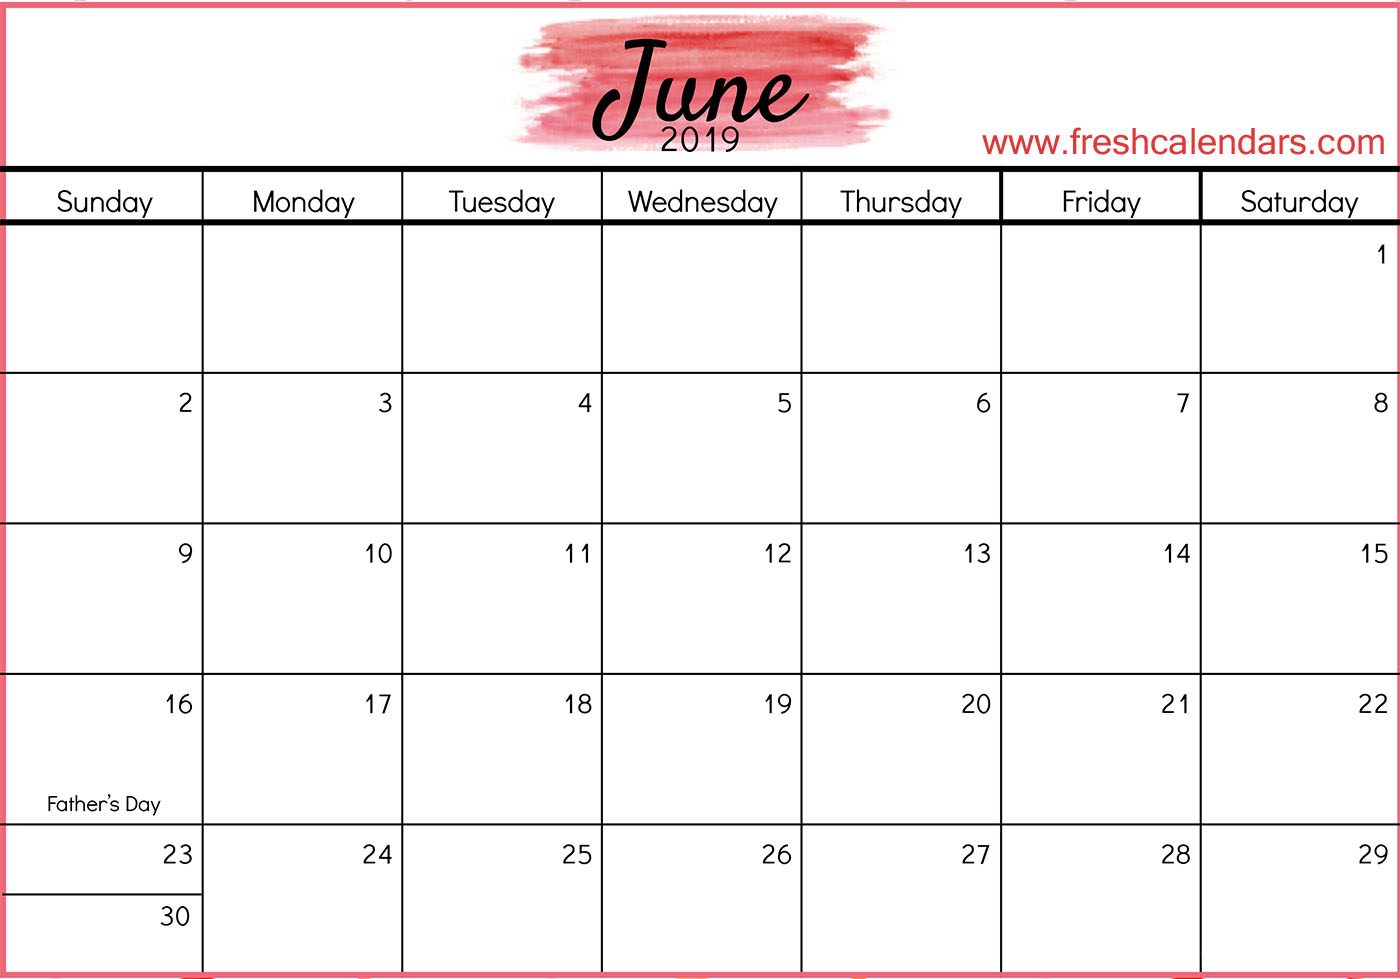 June 2019 Calendar Templates of Red